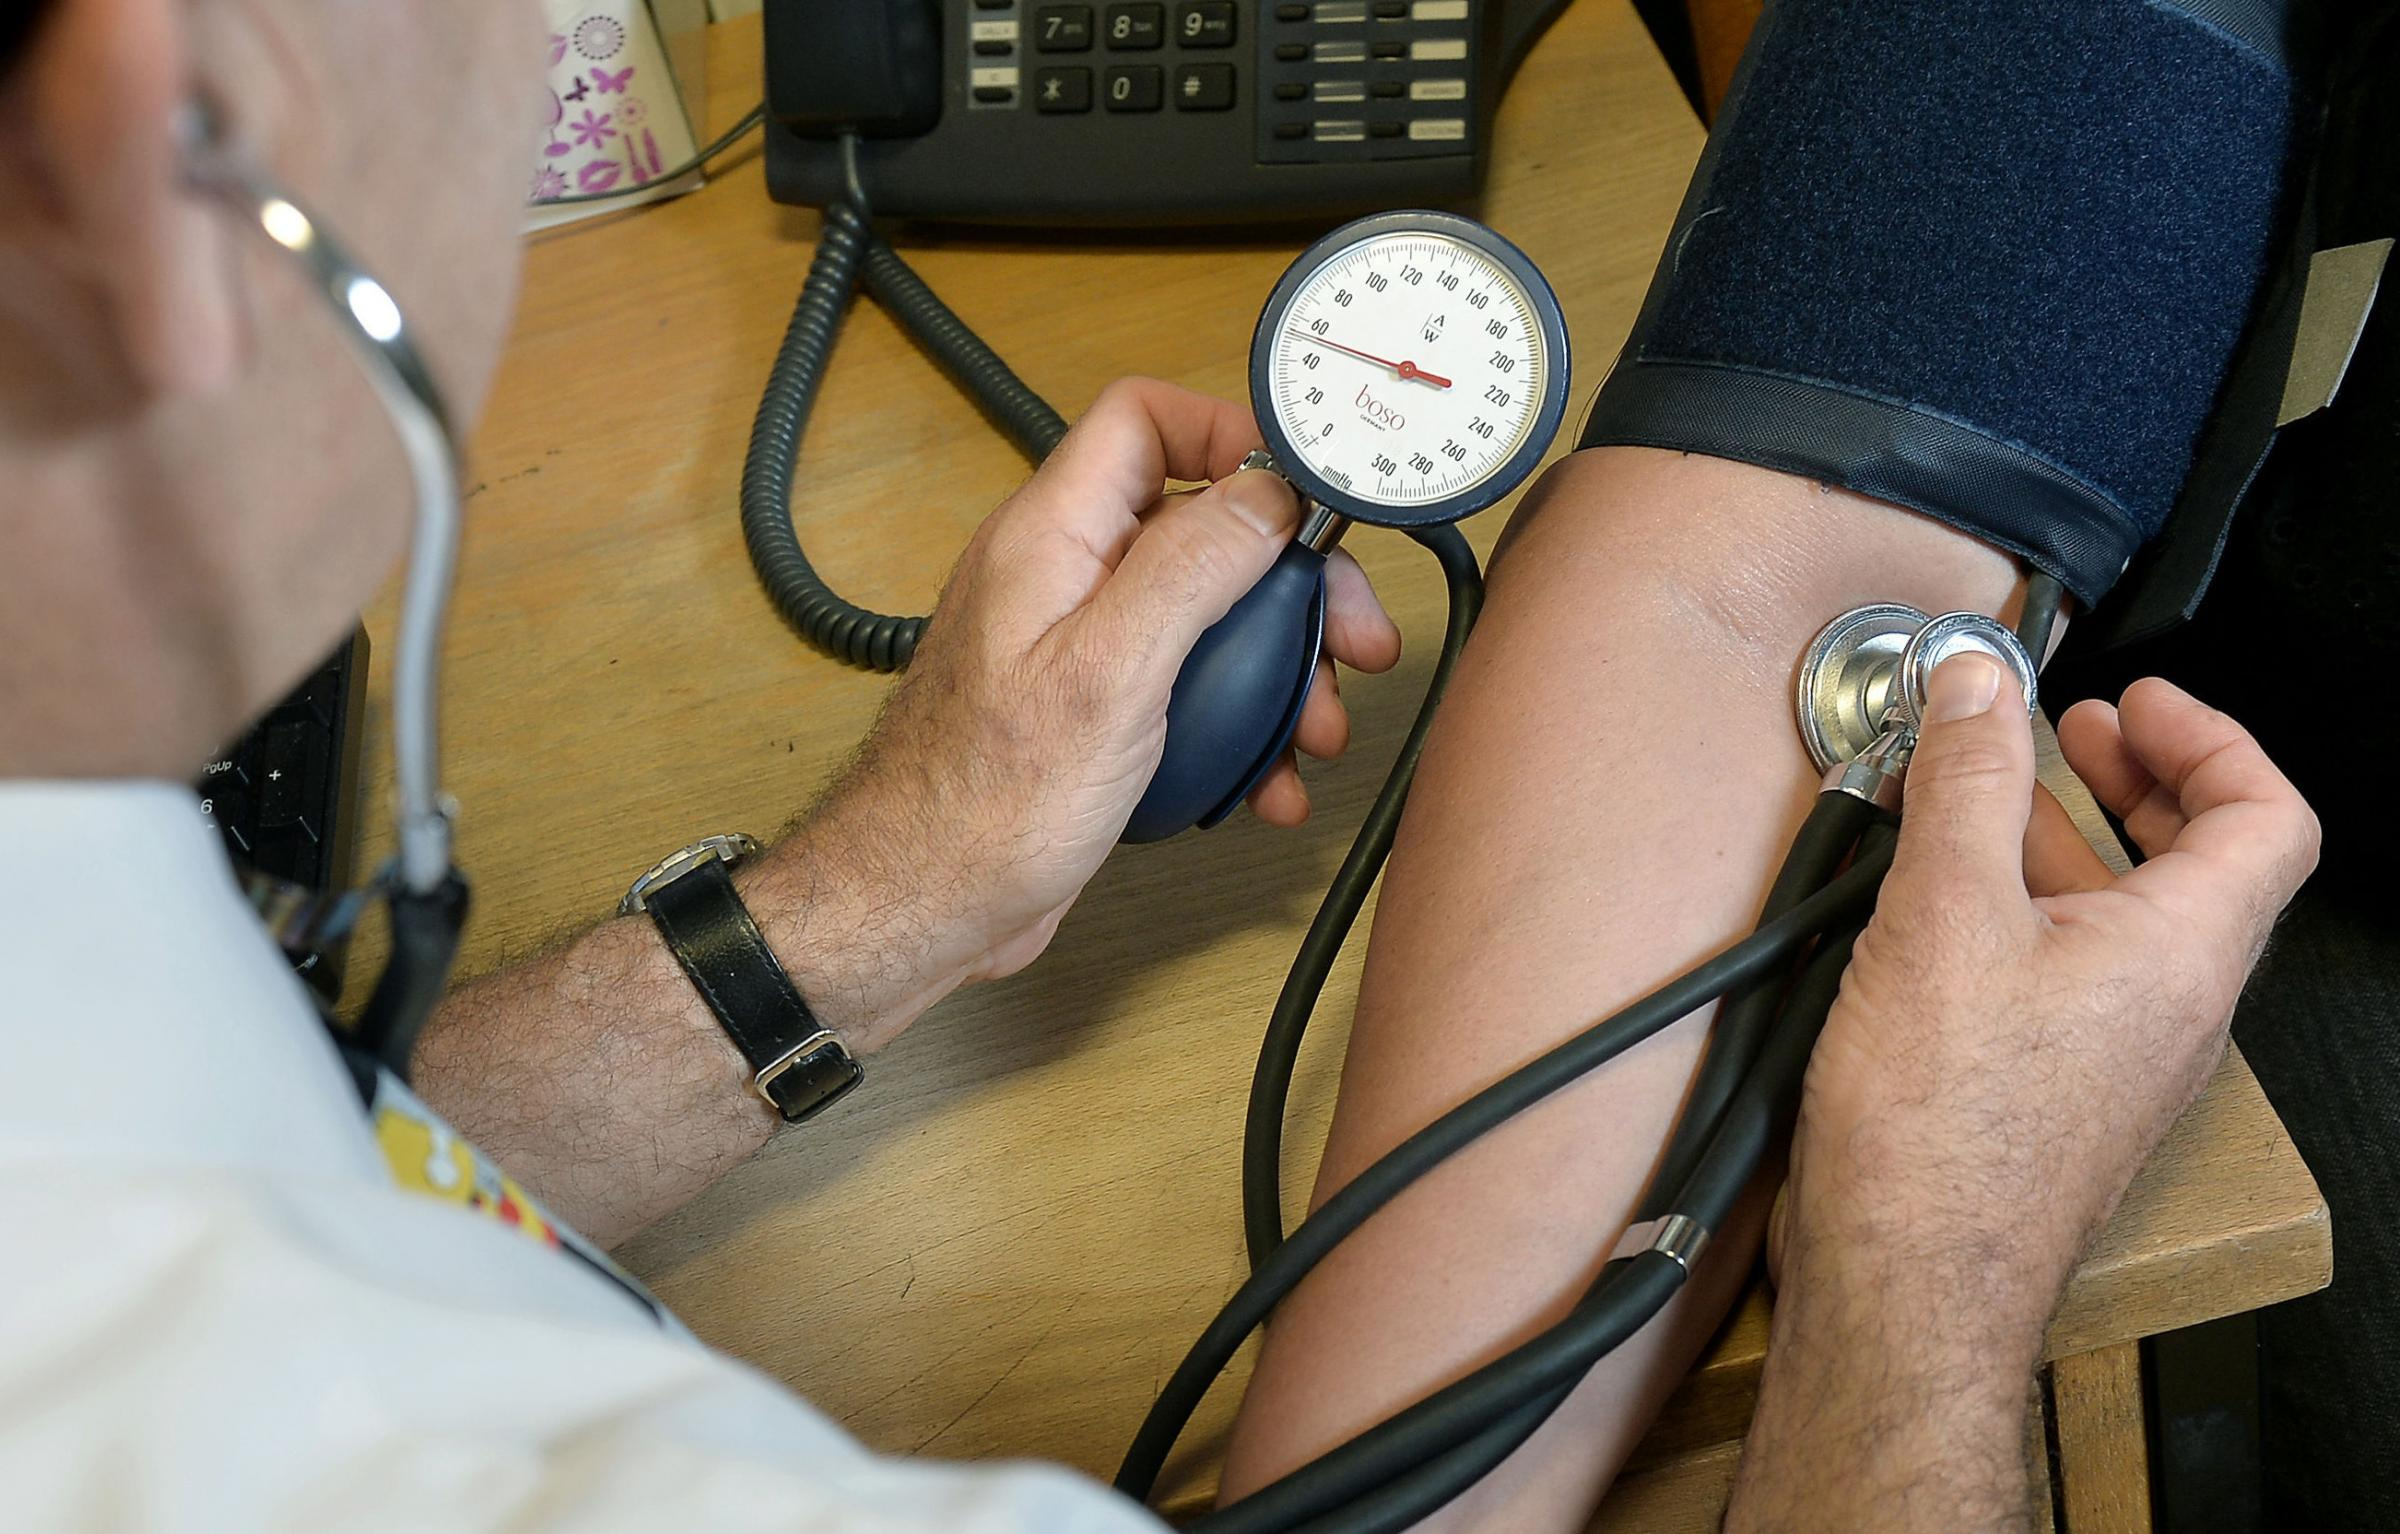 A health check may just save your life, says Dr Zak